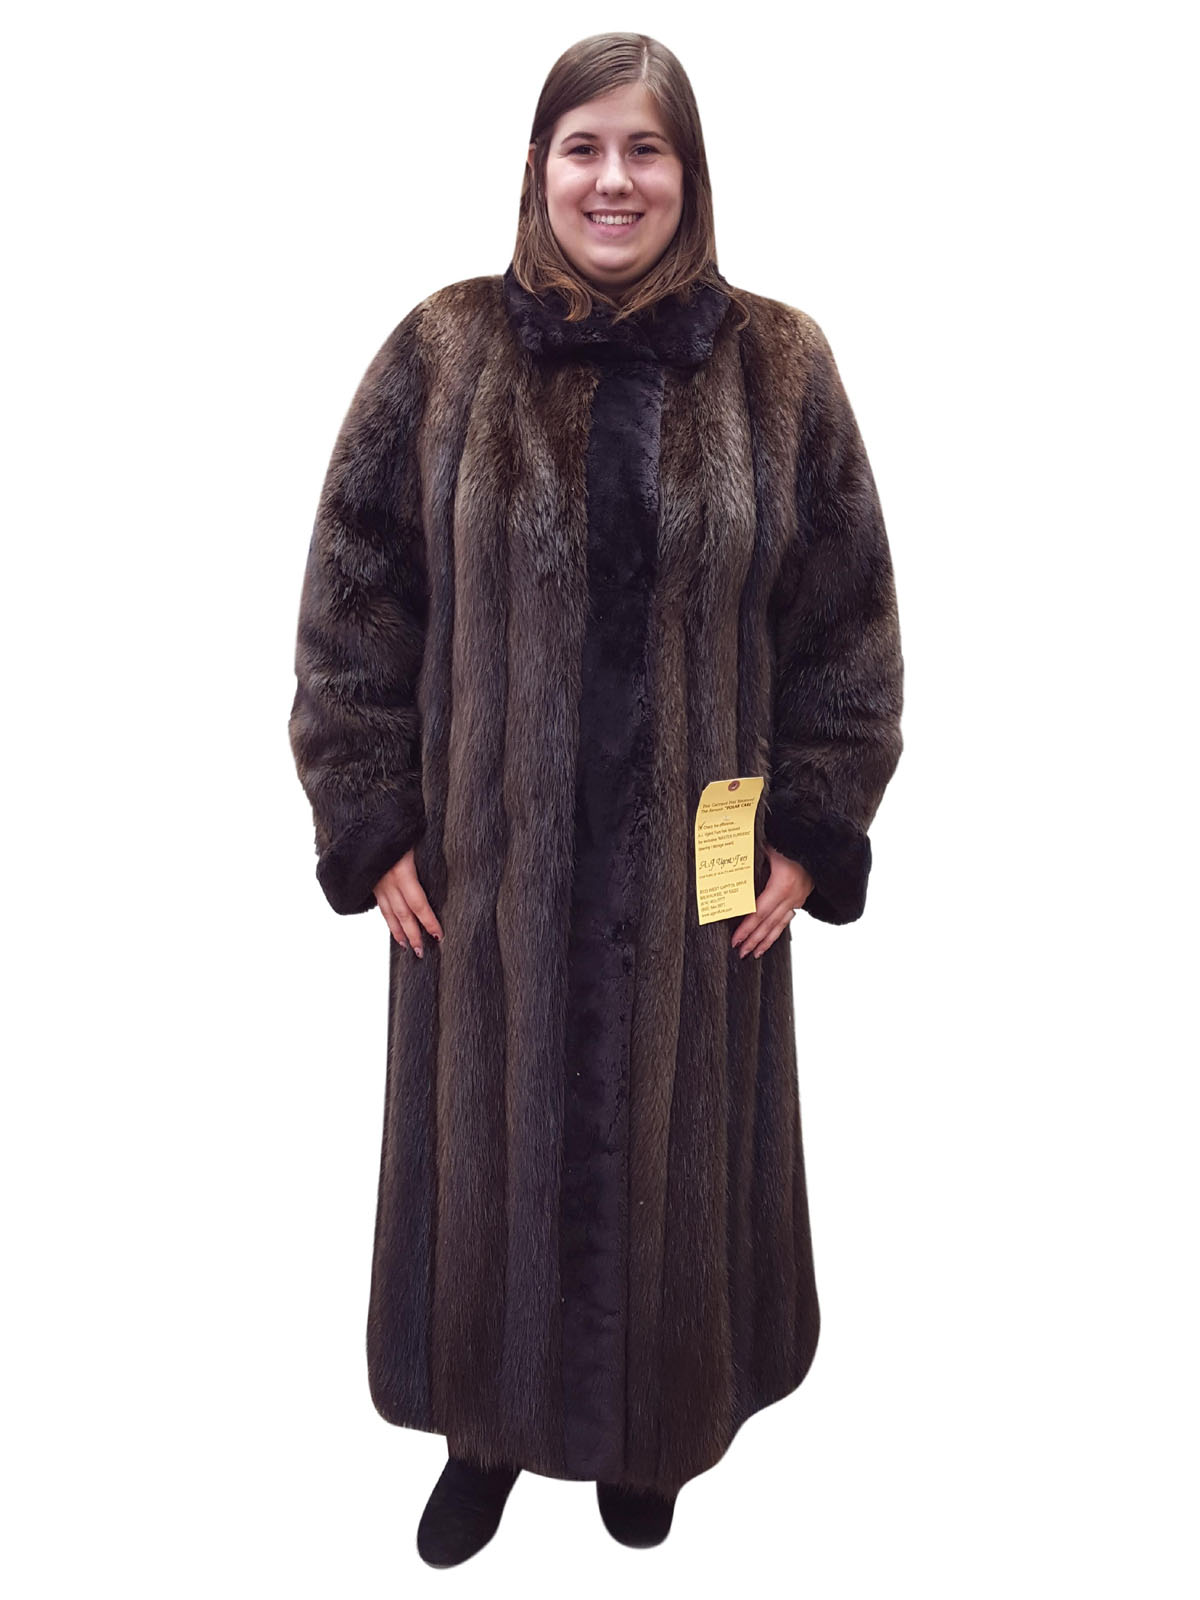 Long Hair Beaver Coat with Sheared Beaver Trim